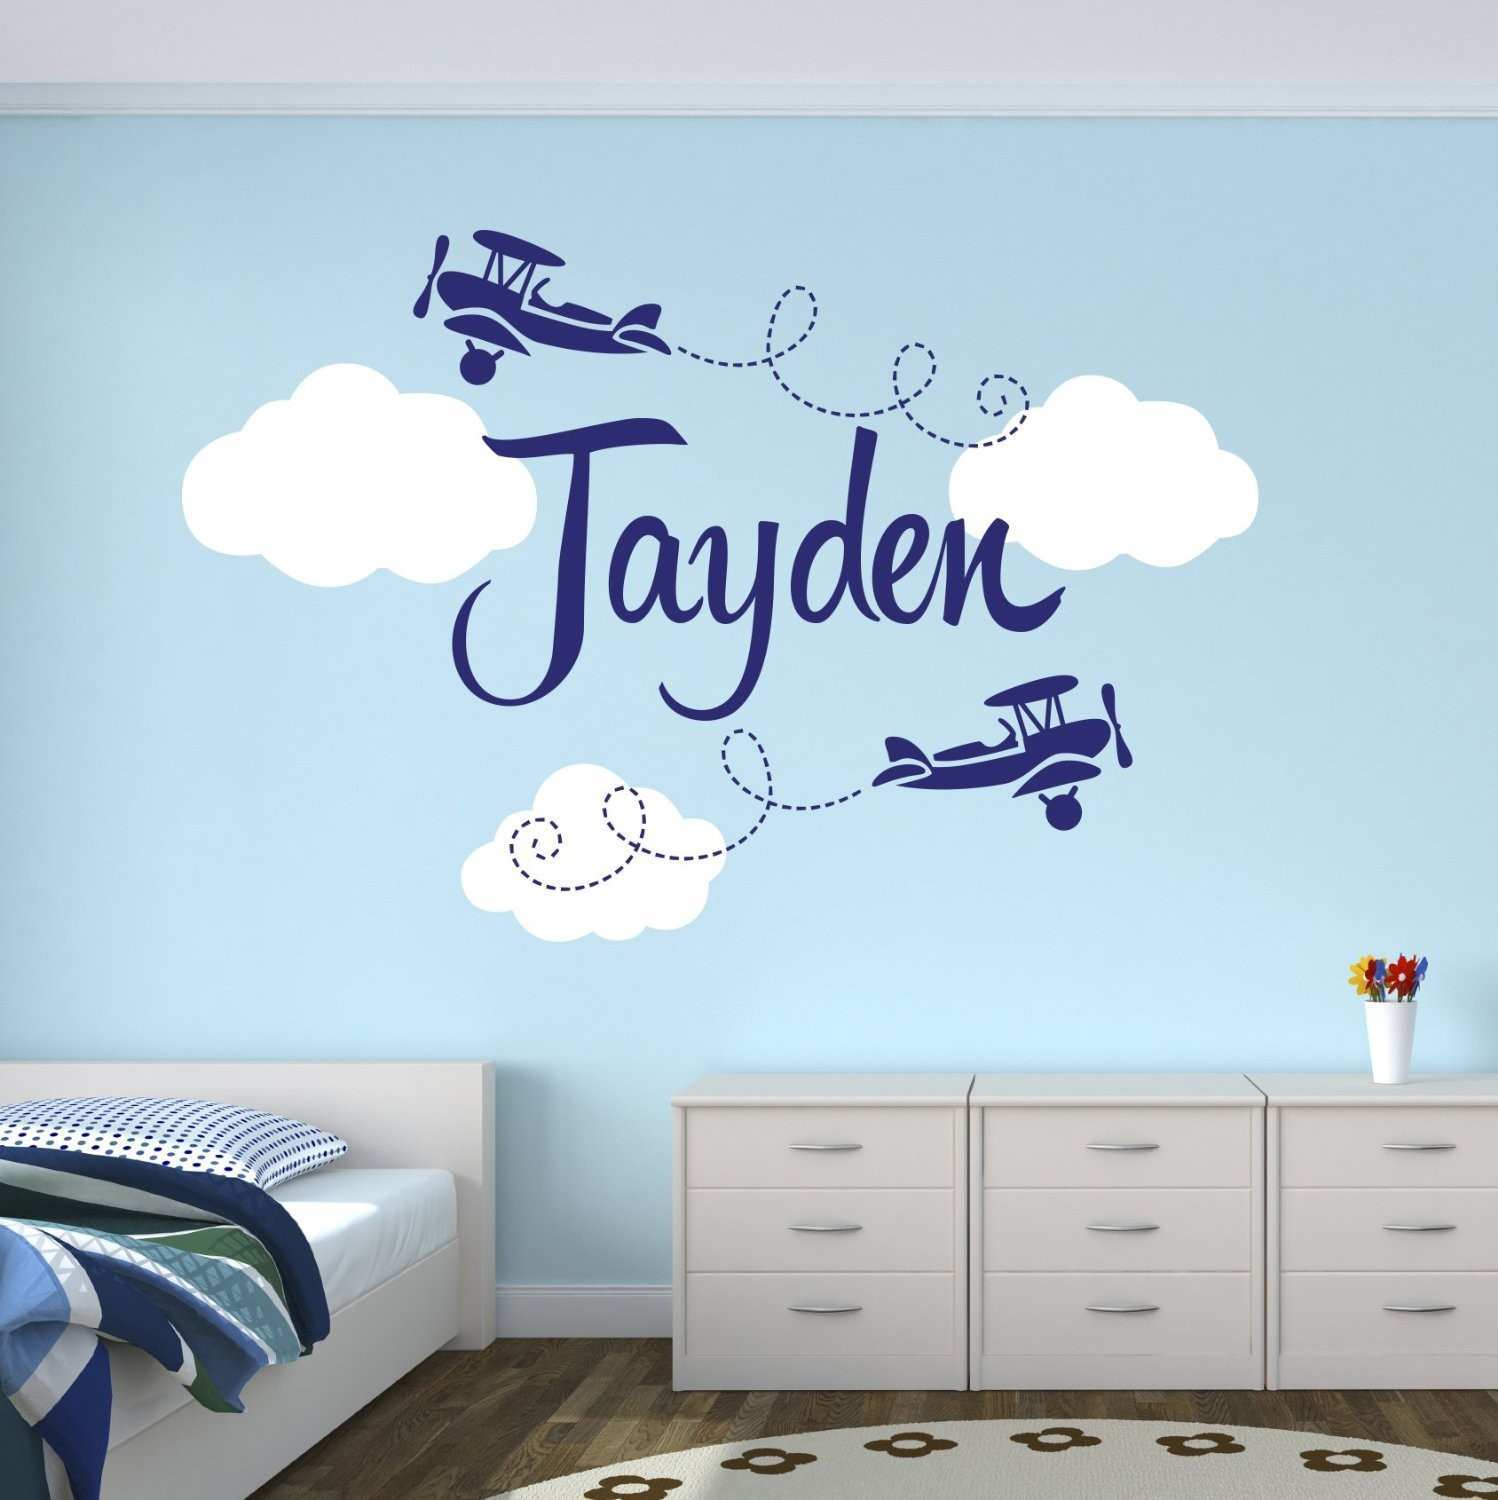 Removable Wall Decals Vinyl Interior Home Decor Beauty Salon Girl